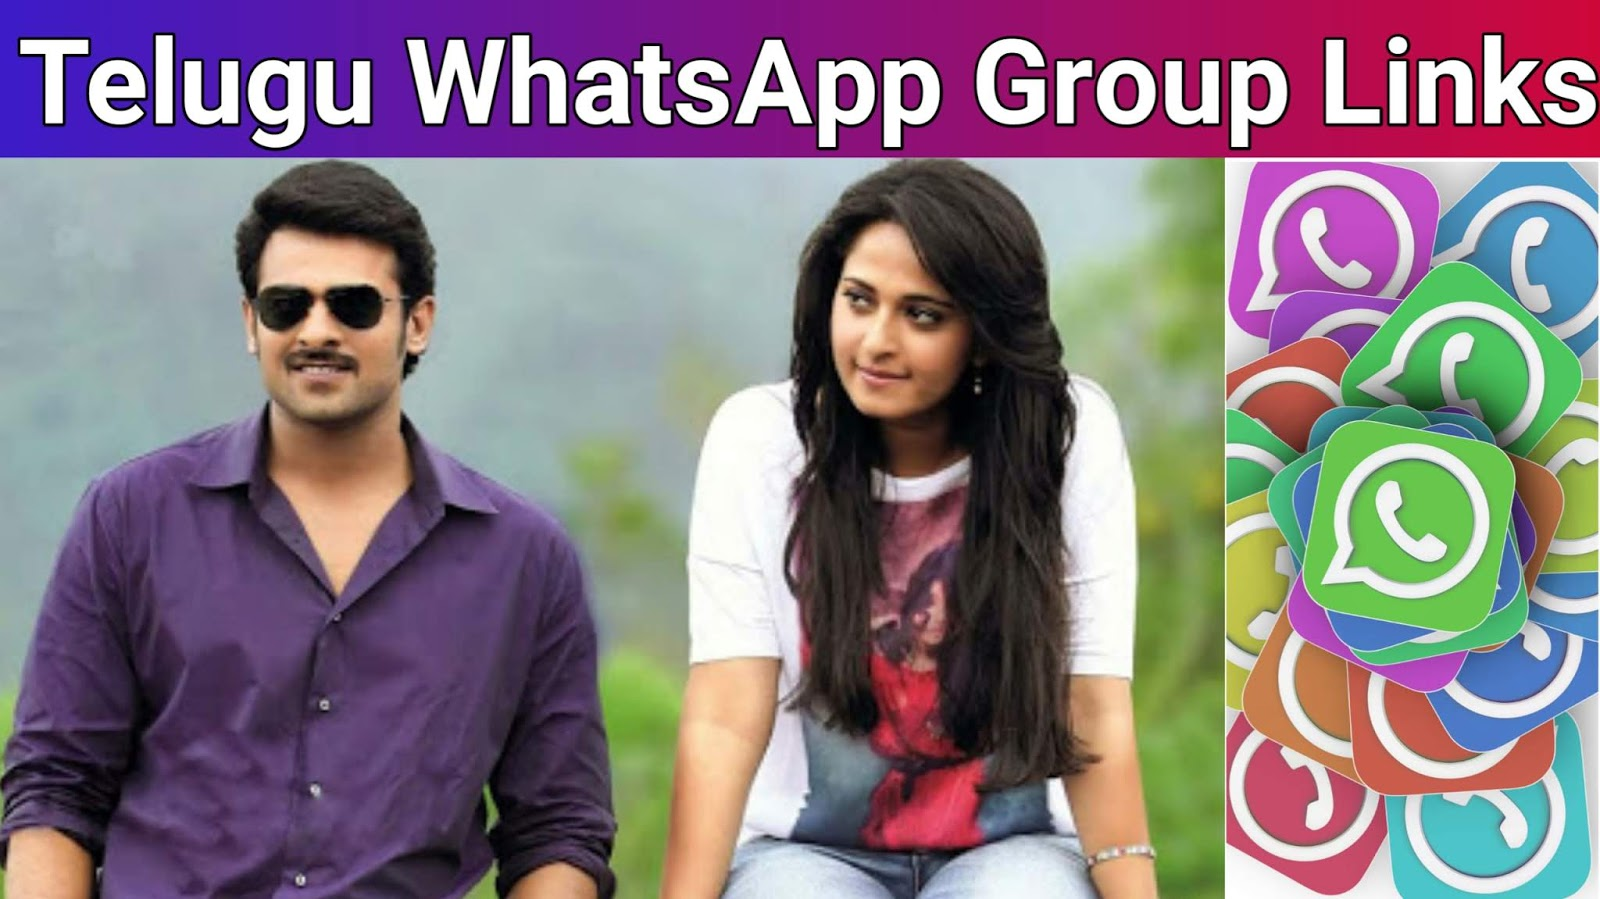 Telugu WhatsApp Group Link Join List - తెలుగు Whatsapp